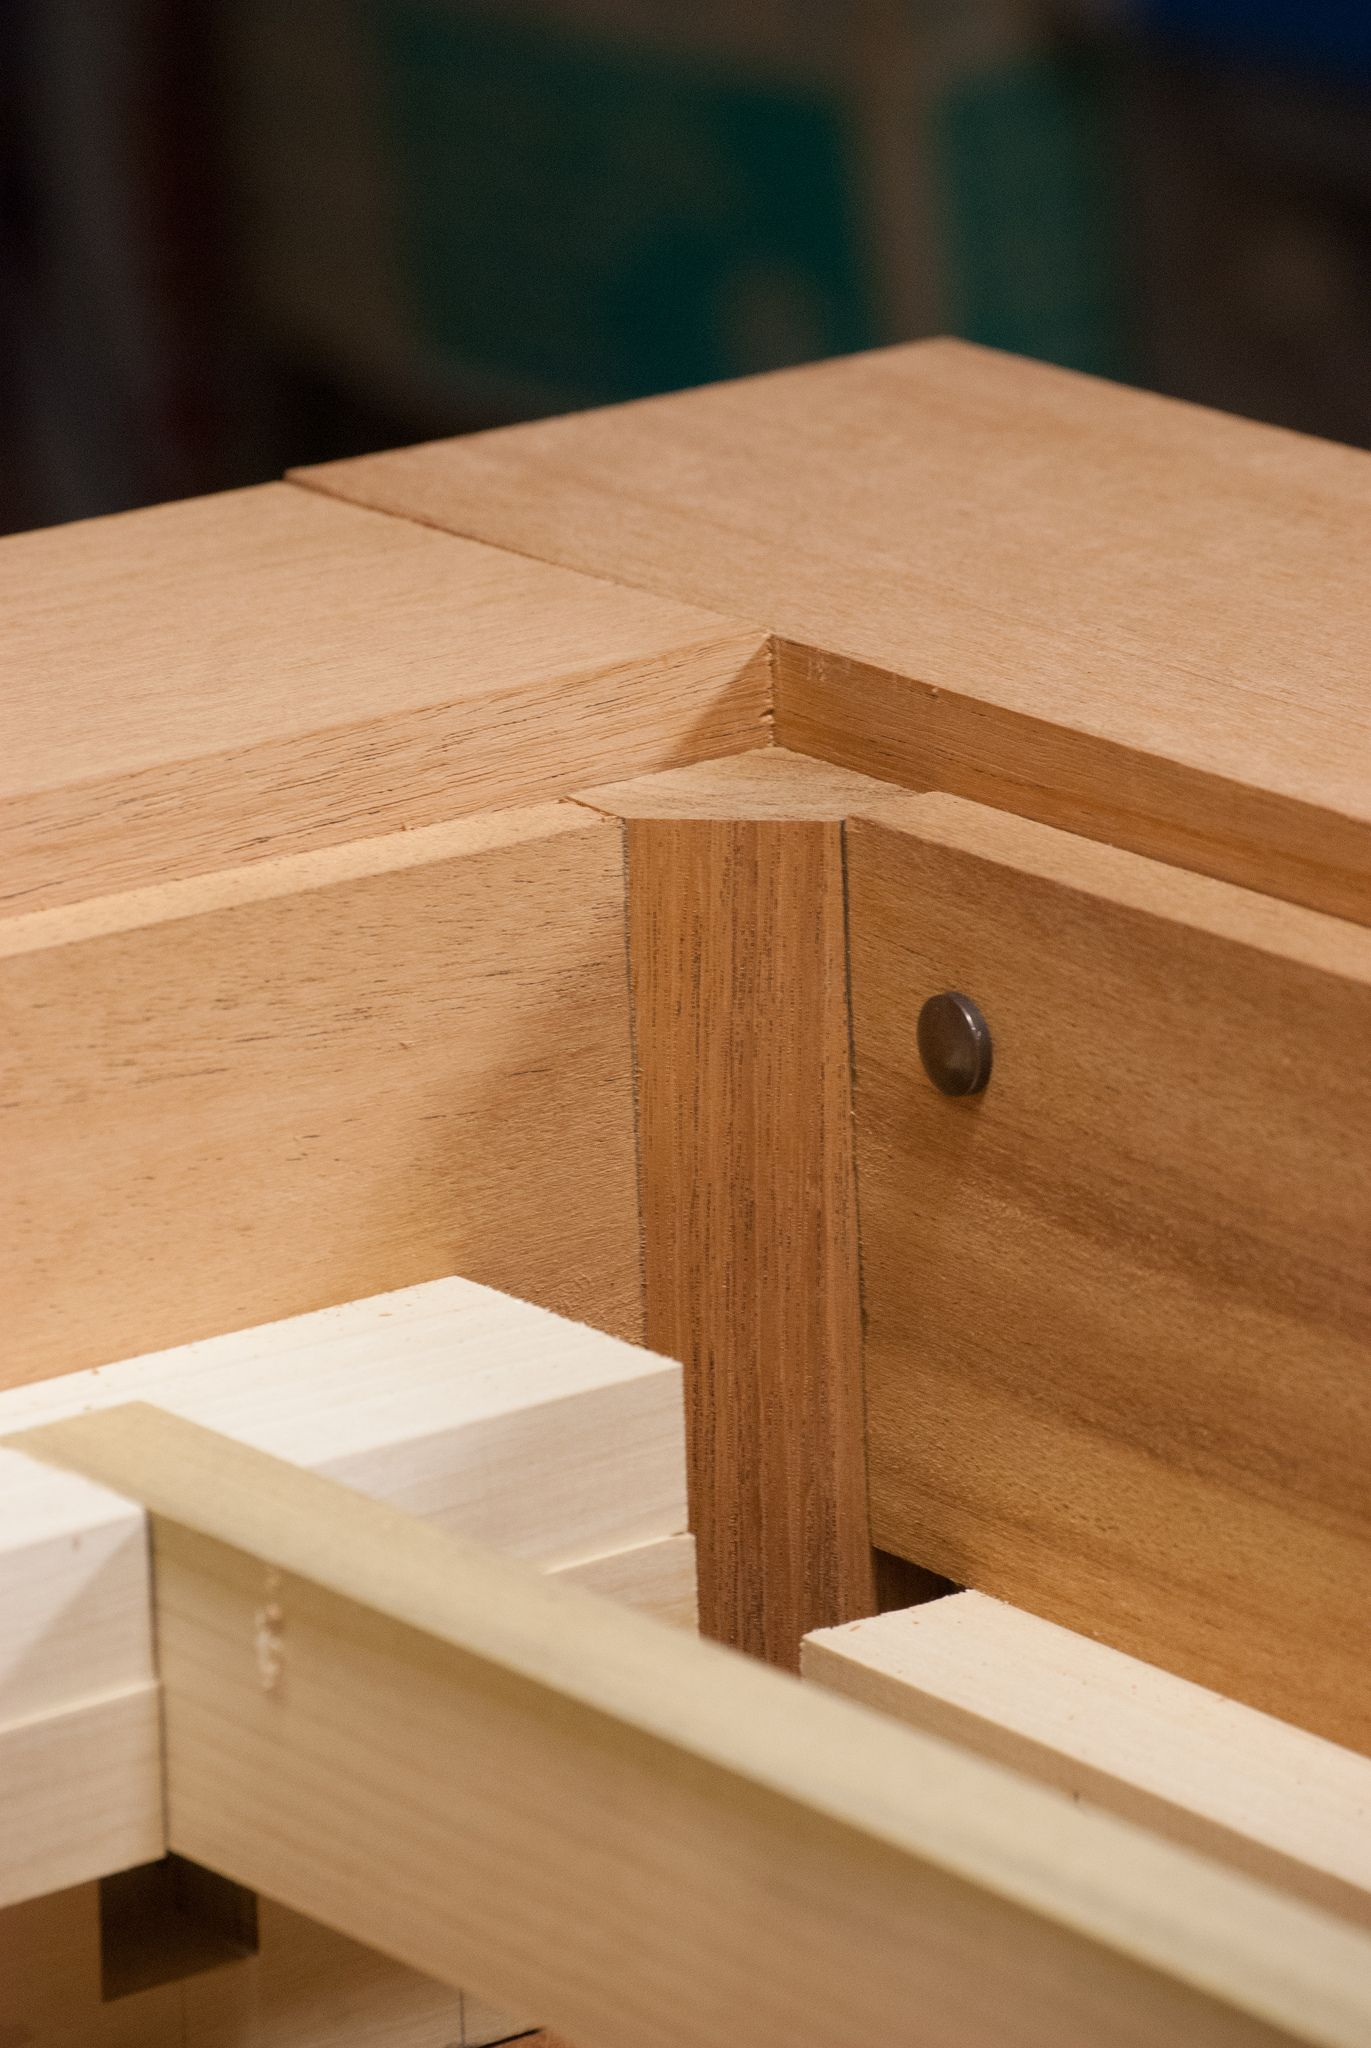 How to make money with woodworking, How do make money from